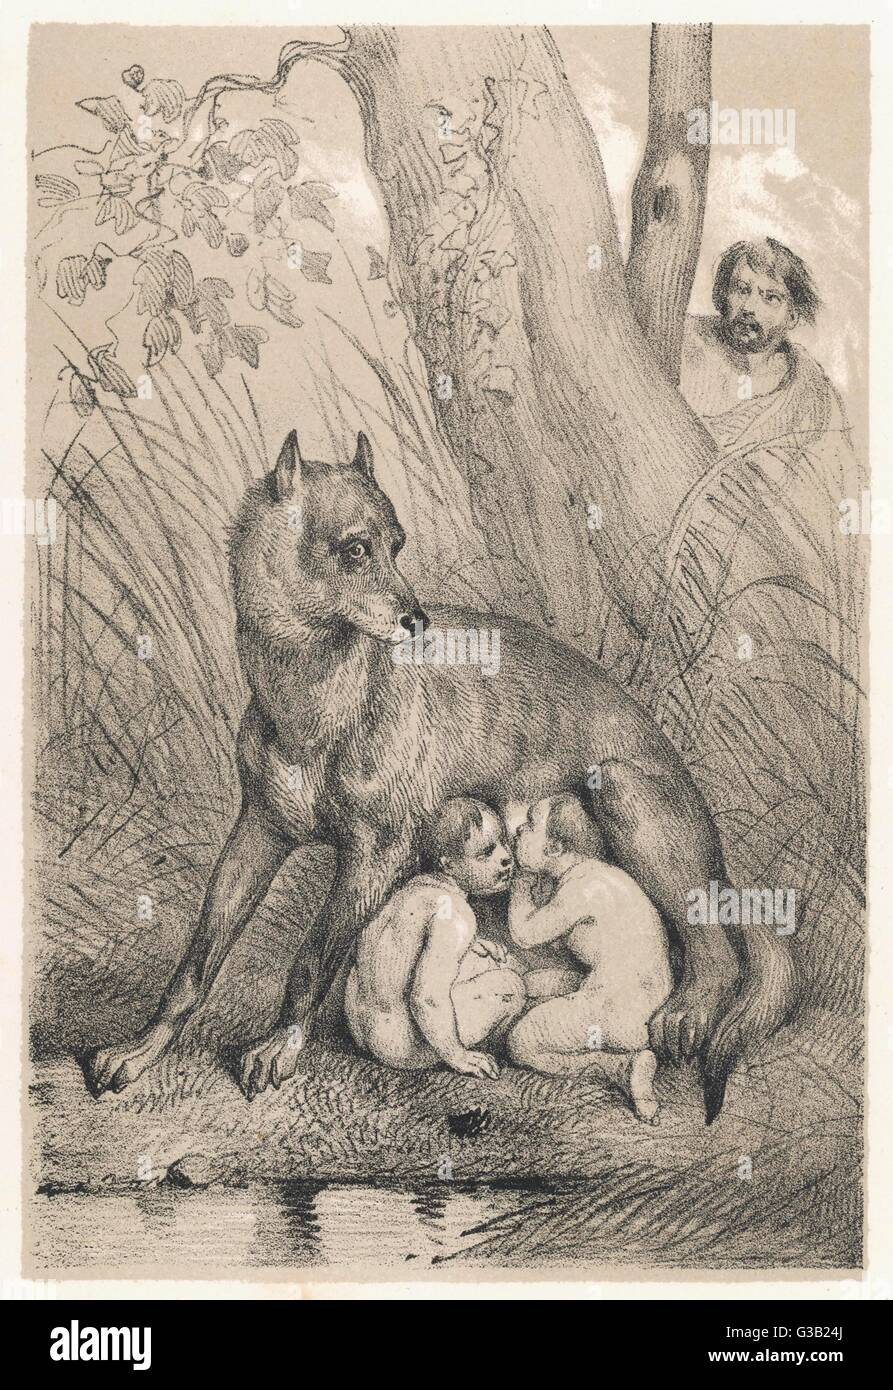 Romulus and Remus are fostered  by a kindly she-wolf, and live  to found the Roman state        Date: circa 780 - Stock Image